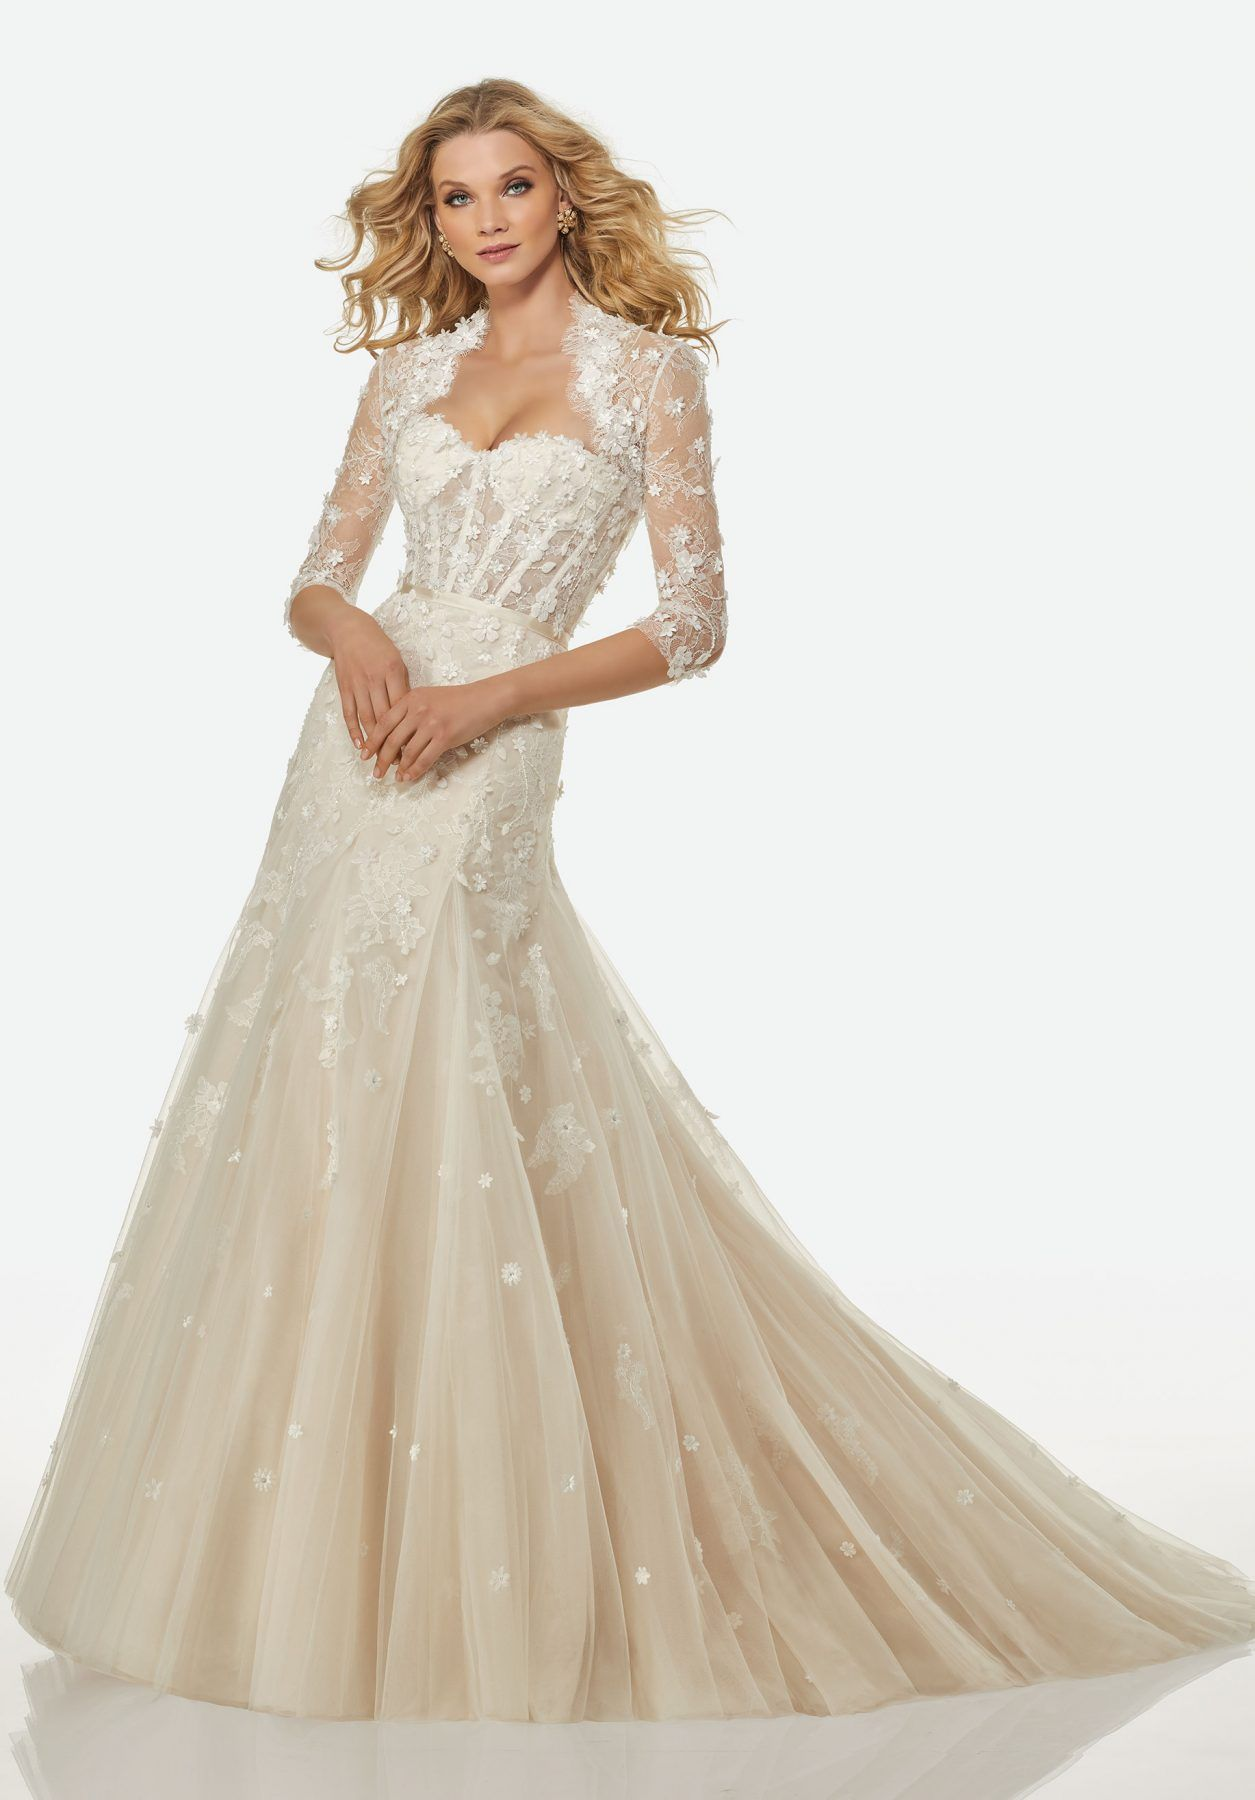 """Linda"" Dress has beaded flowers and lace appliqués on a"